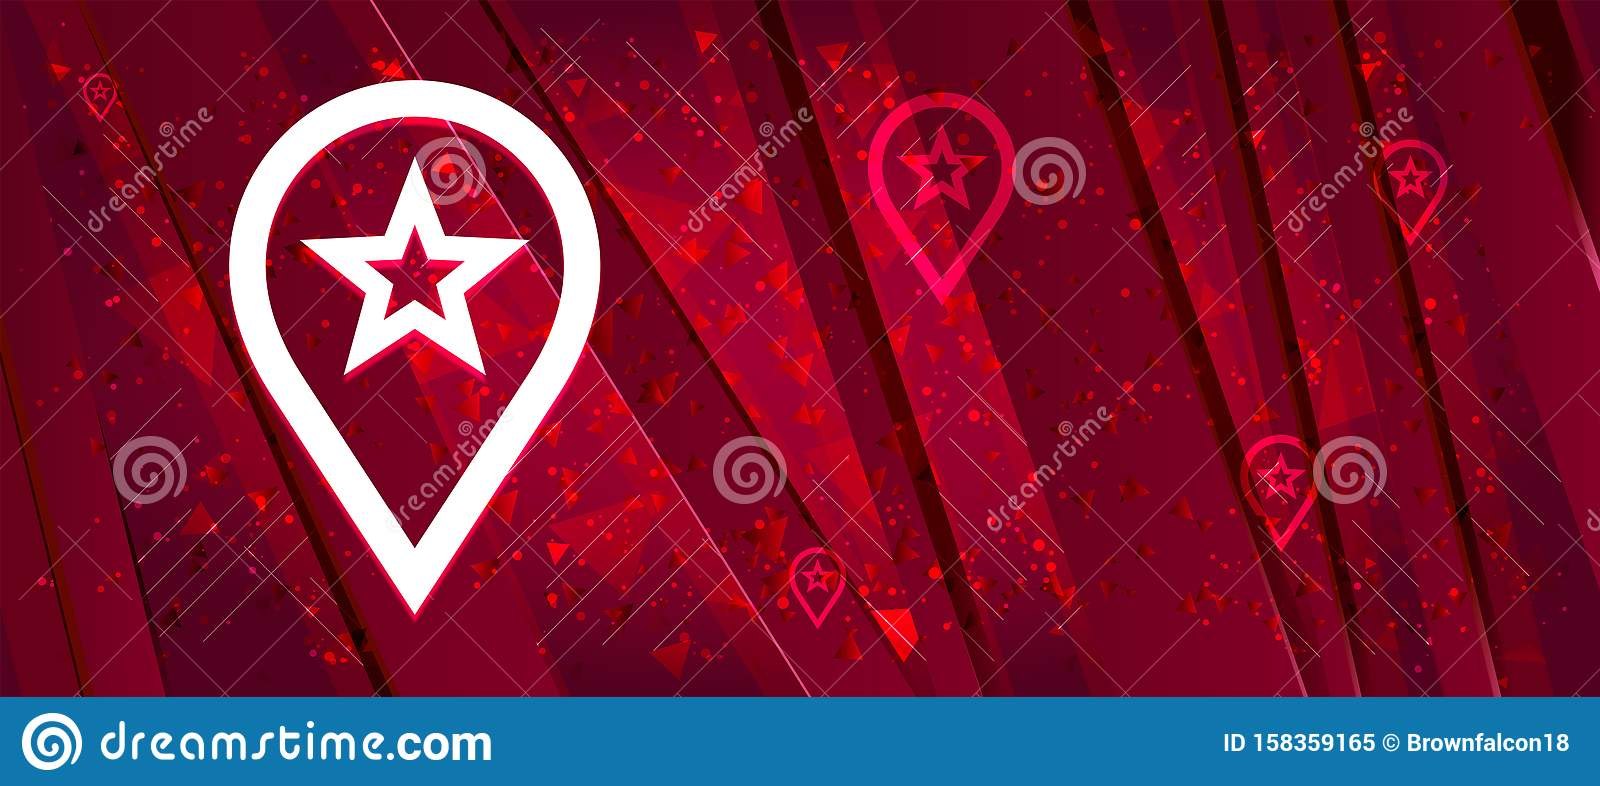 Map pointer star icon Abstract design bright red banner background